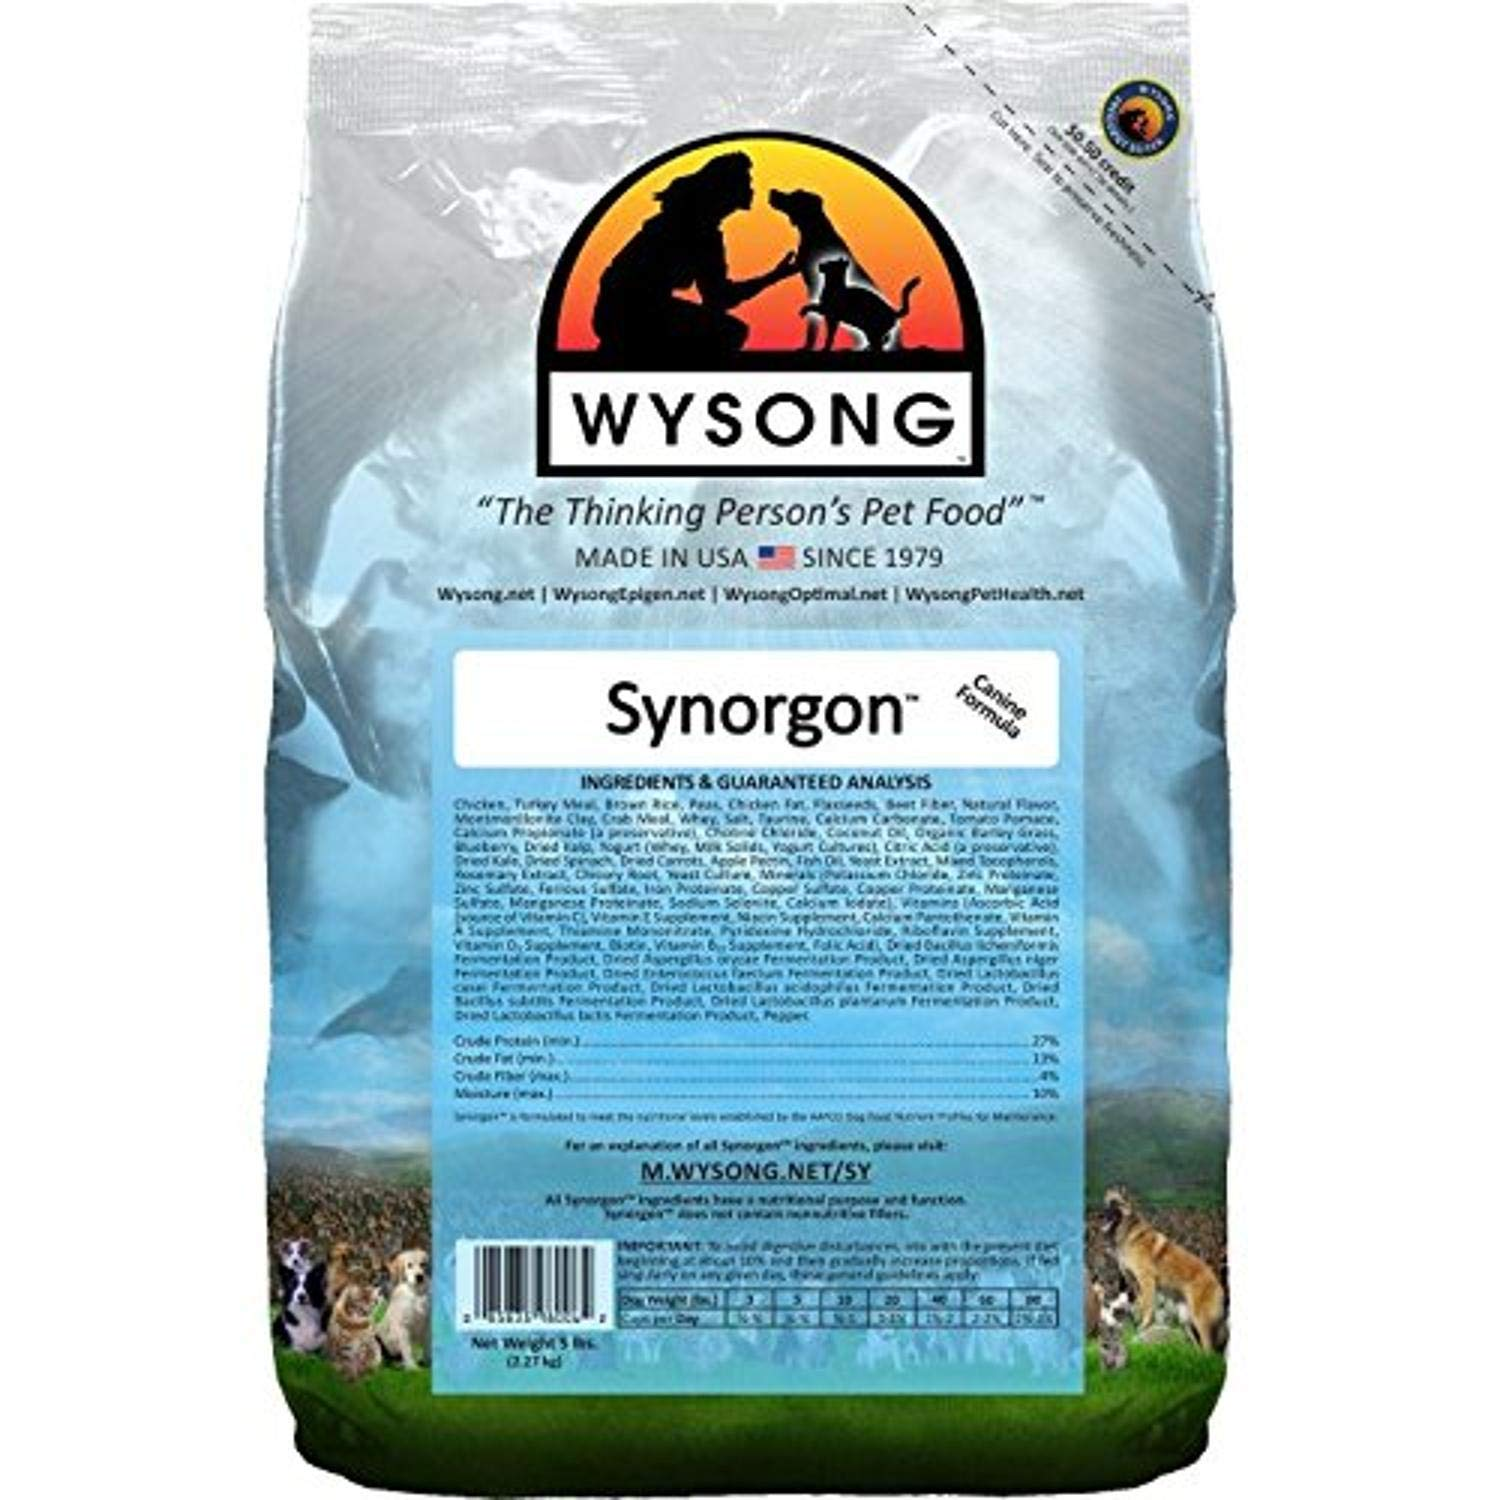 5. Wysong Synorgon Dry Dog Food